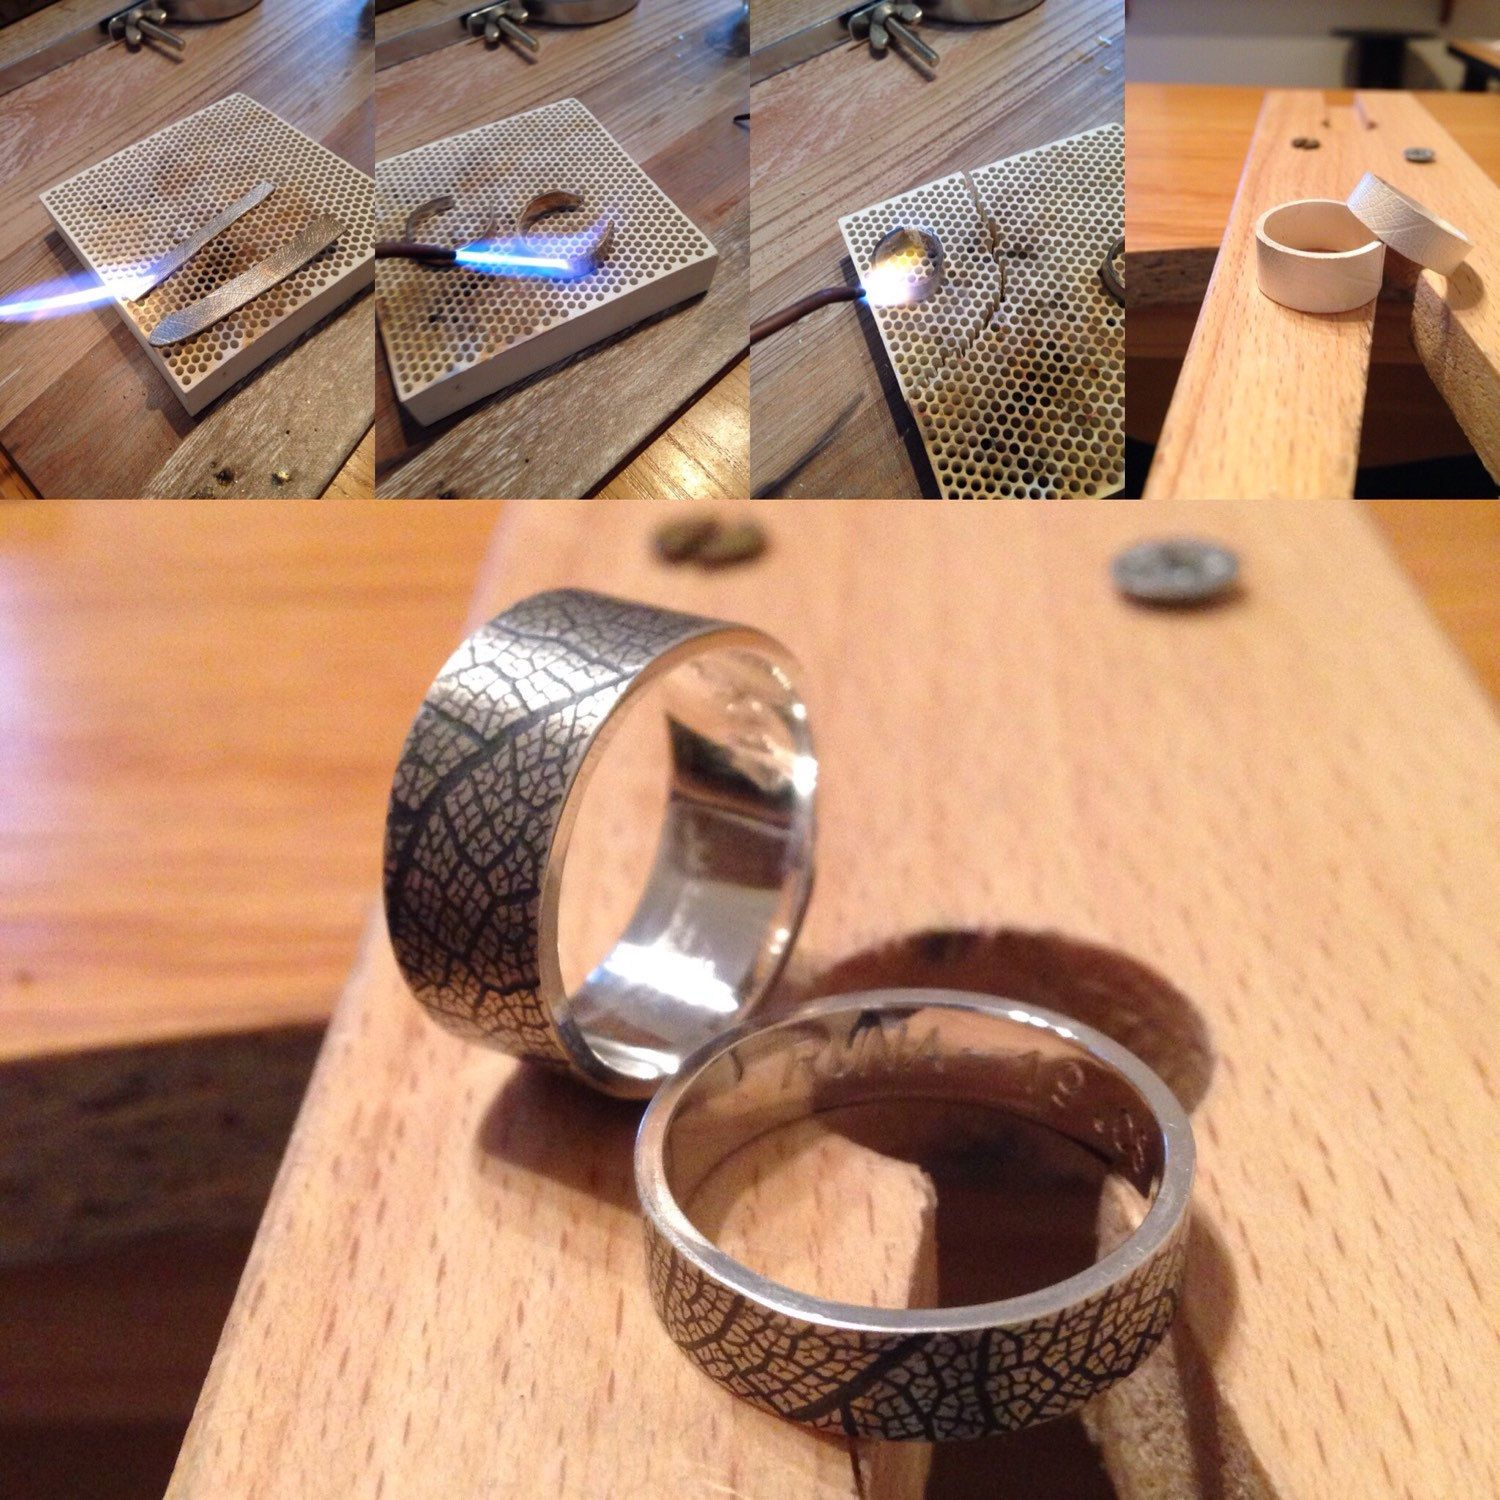 Marvelous Anniversary Wedding Bands In Different Stages Of The Handcrafted Process.